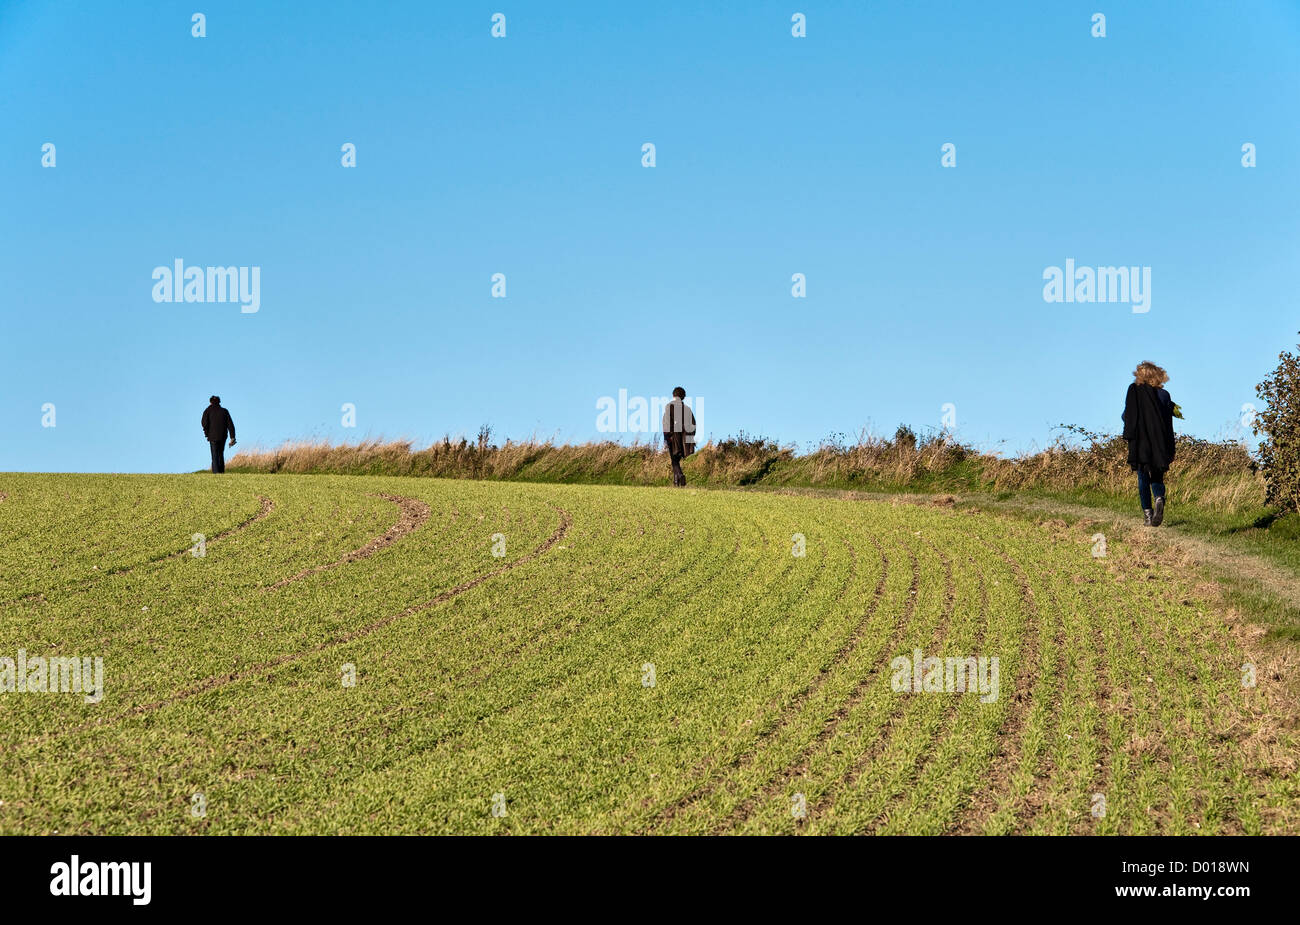 Three people on a walk in the country - Stock Image